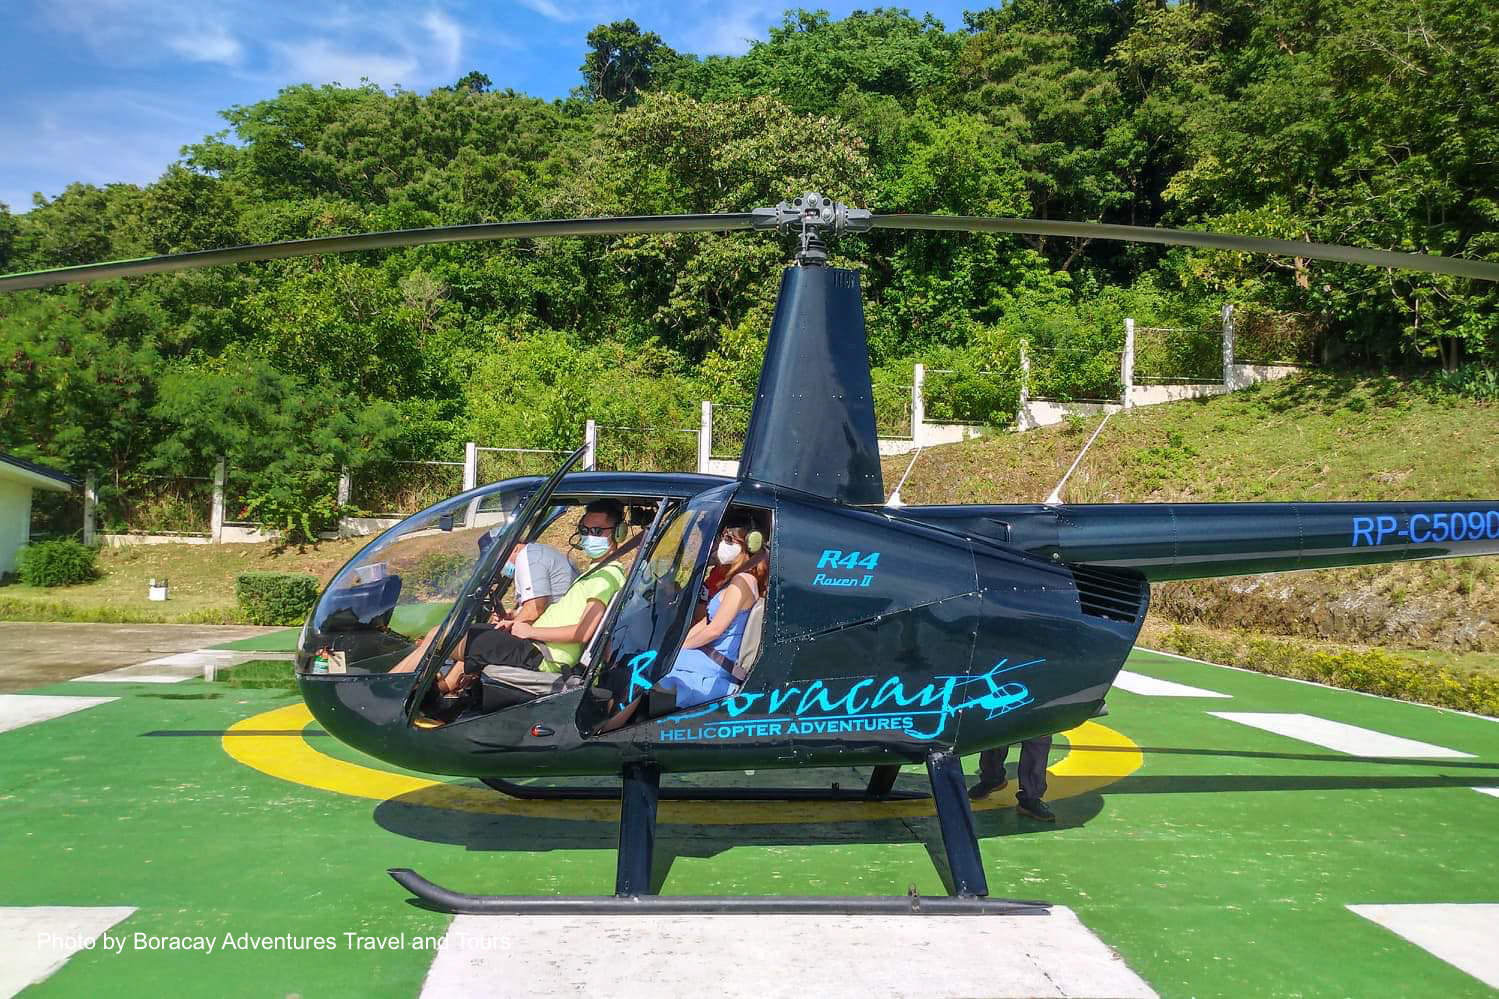 Tourists riding a helicopter to explore Boracay Island